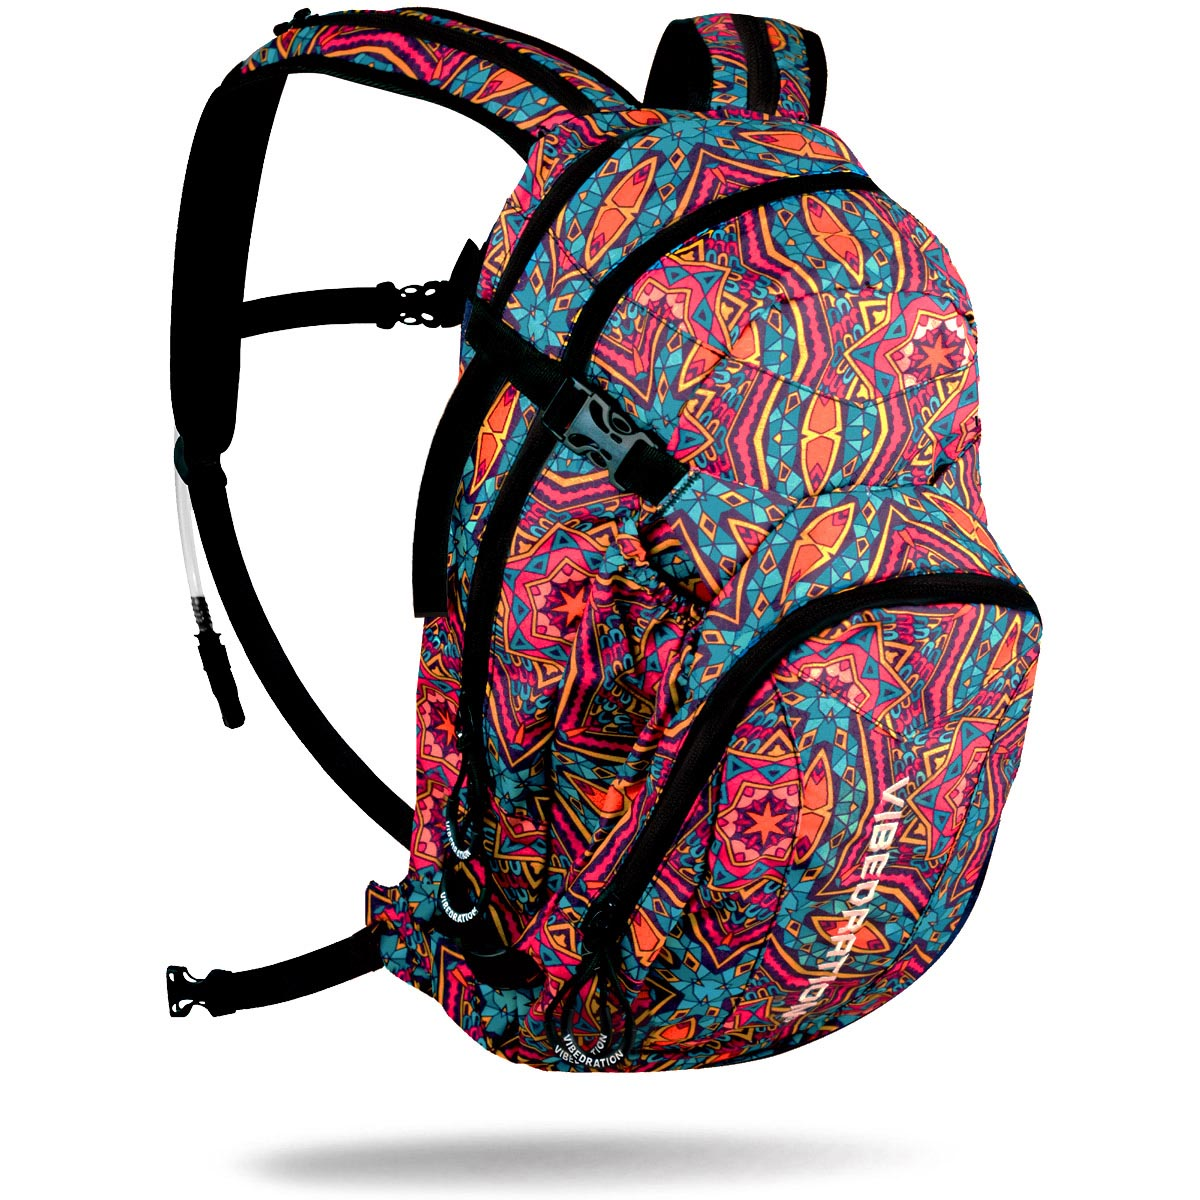 Bohemian hydration pack with three liter water reservoir and three storage pockets.